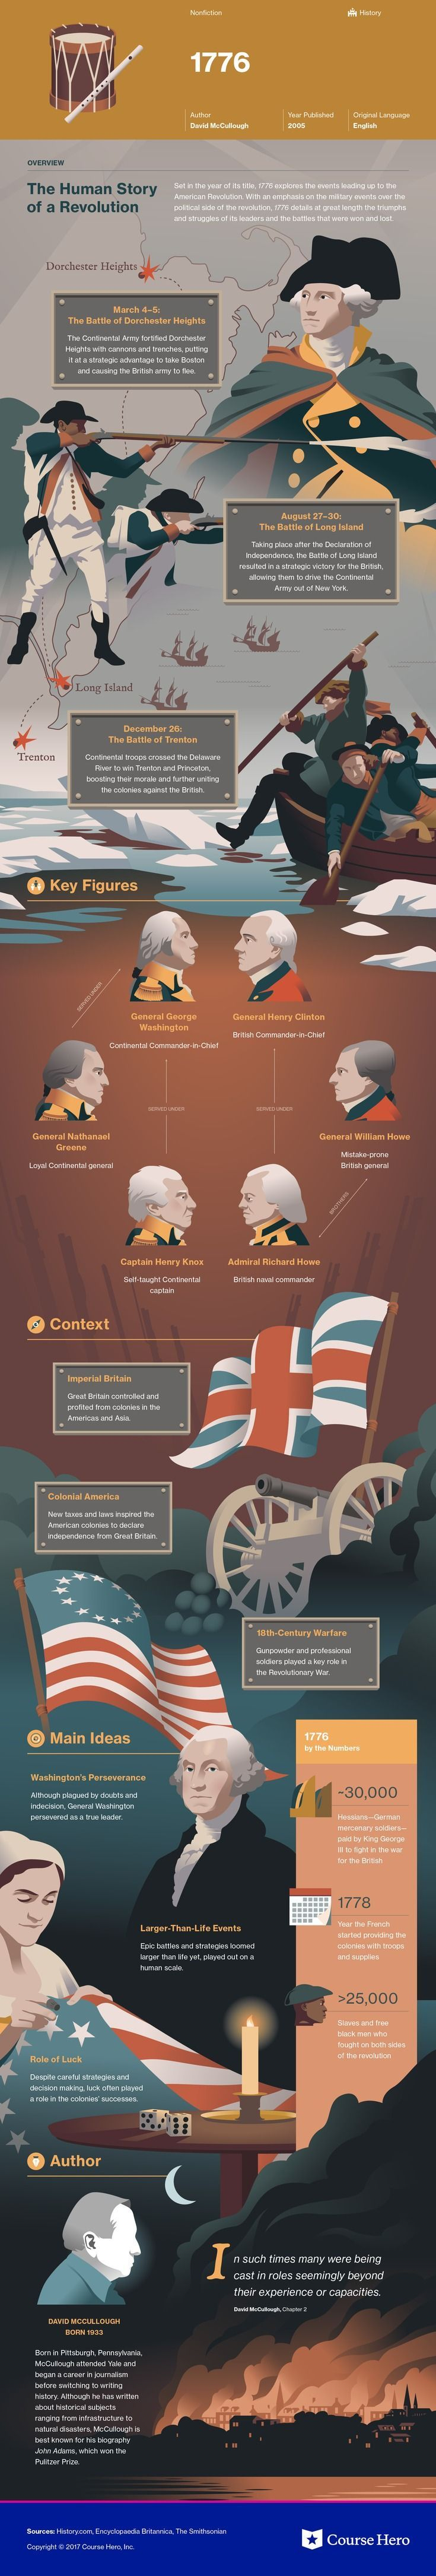 This @CourseHero infographic on 1776 is both visually stunning and informative!